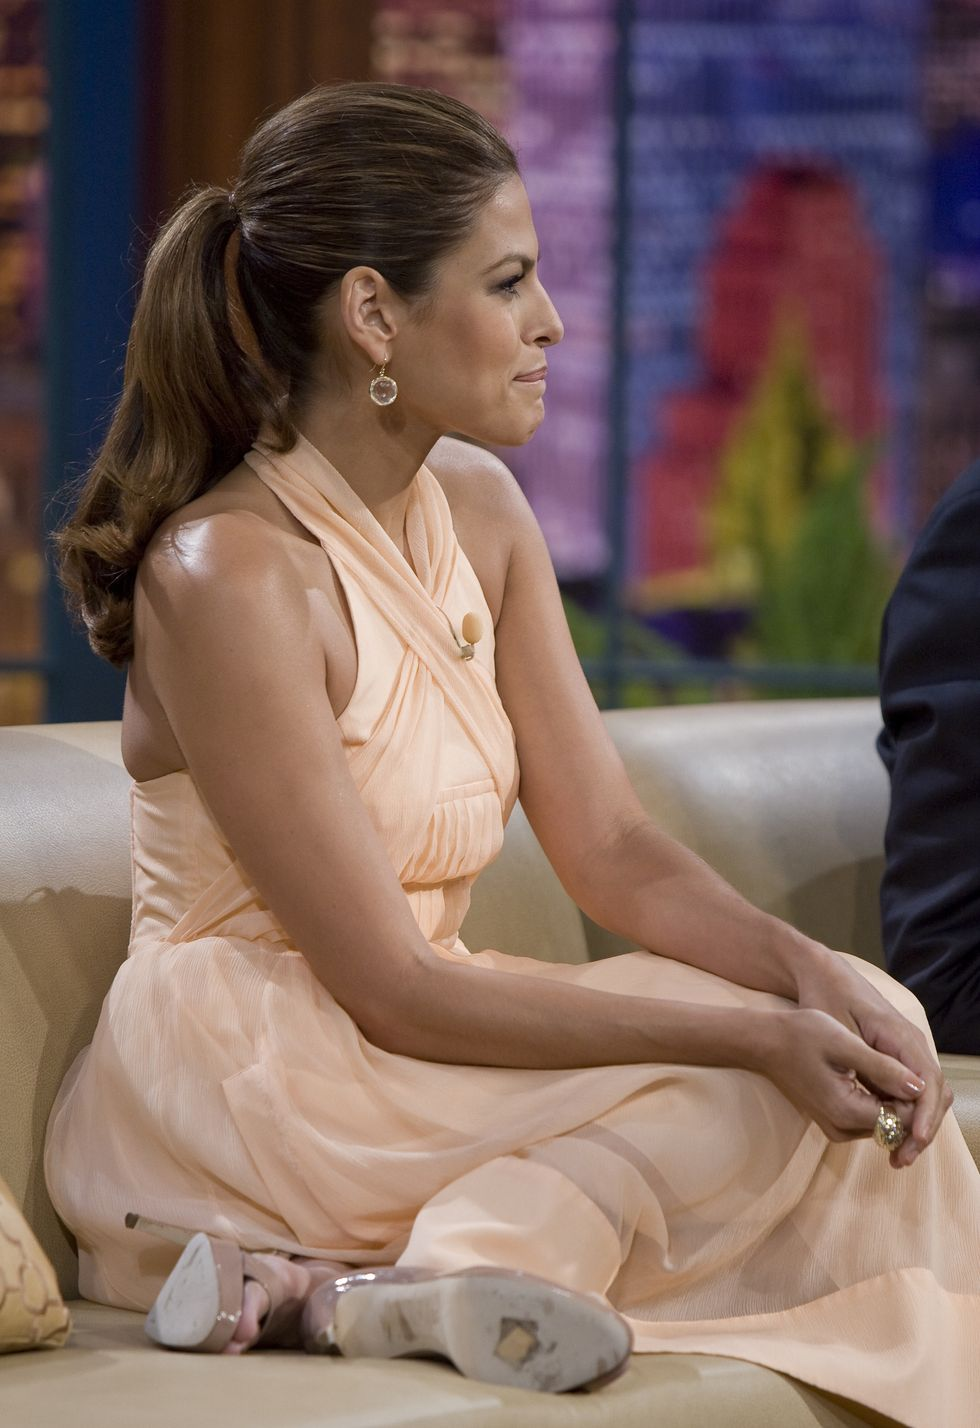 eva-mendes-at-the-tonight-show-with-jay-leno-in-los-angeles-05